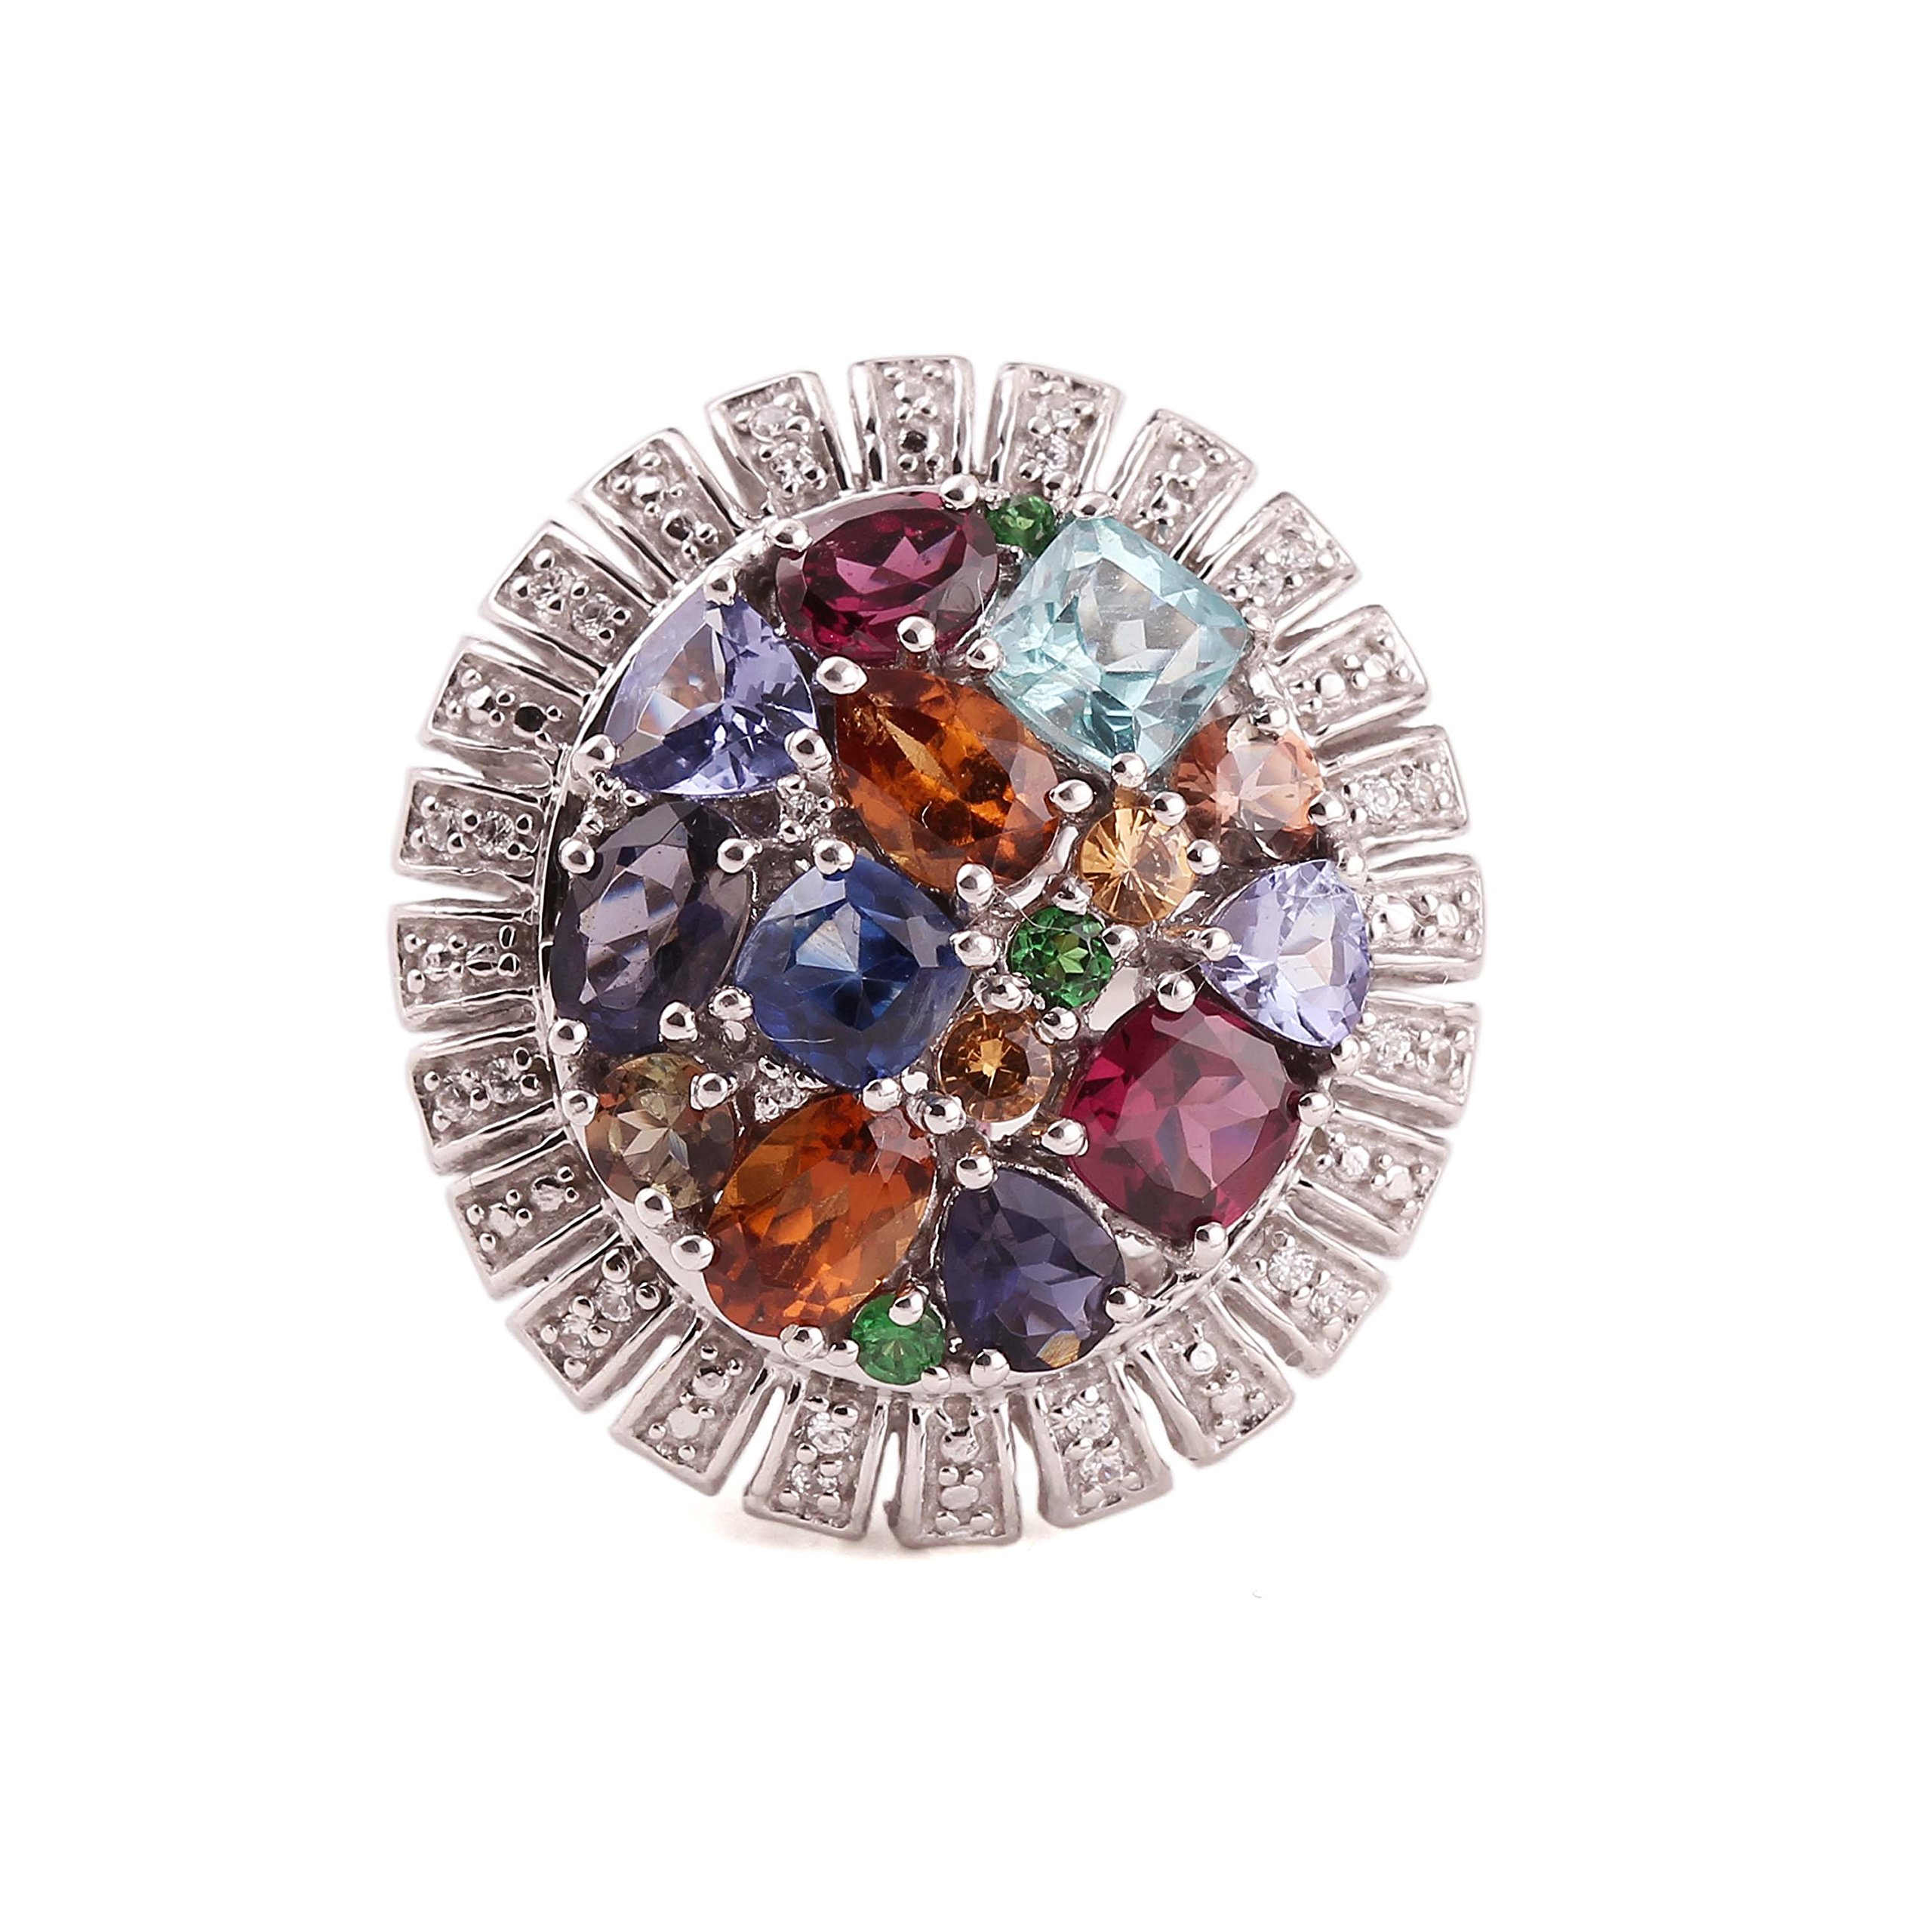 Neerupam collection 925 sterling silver natural gemstone studded silver ring for women and girls